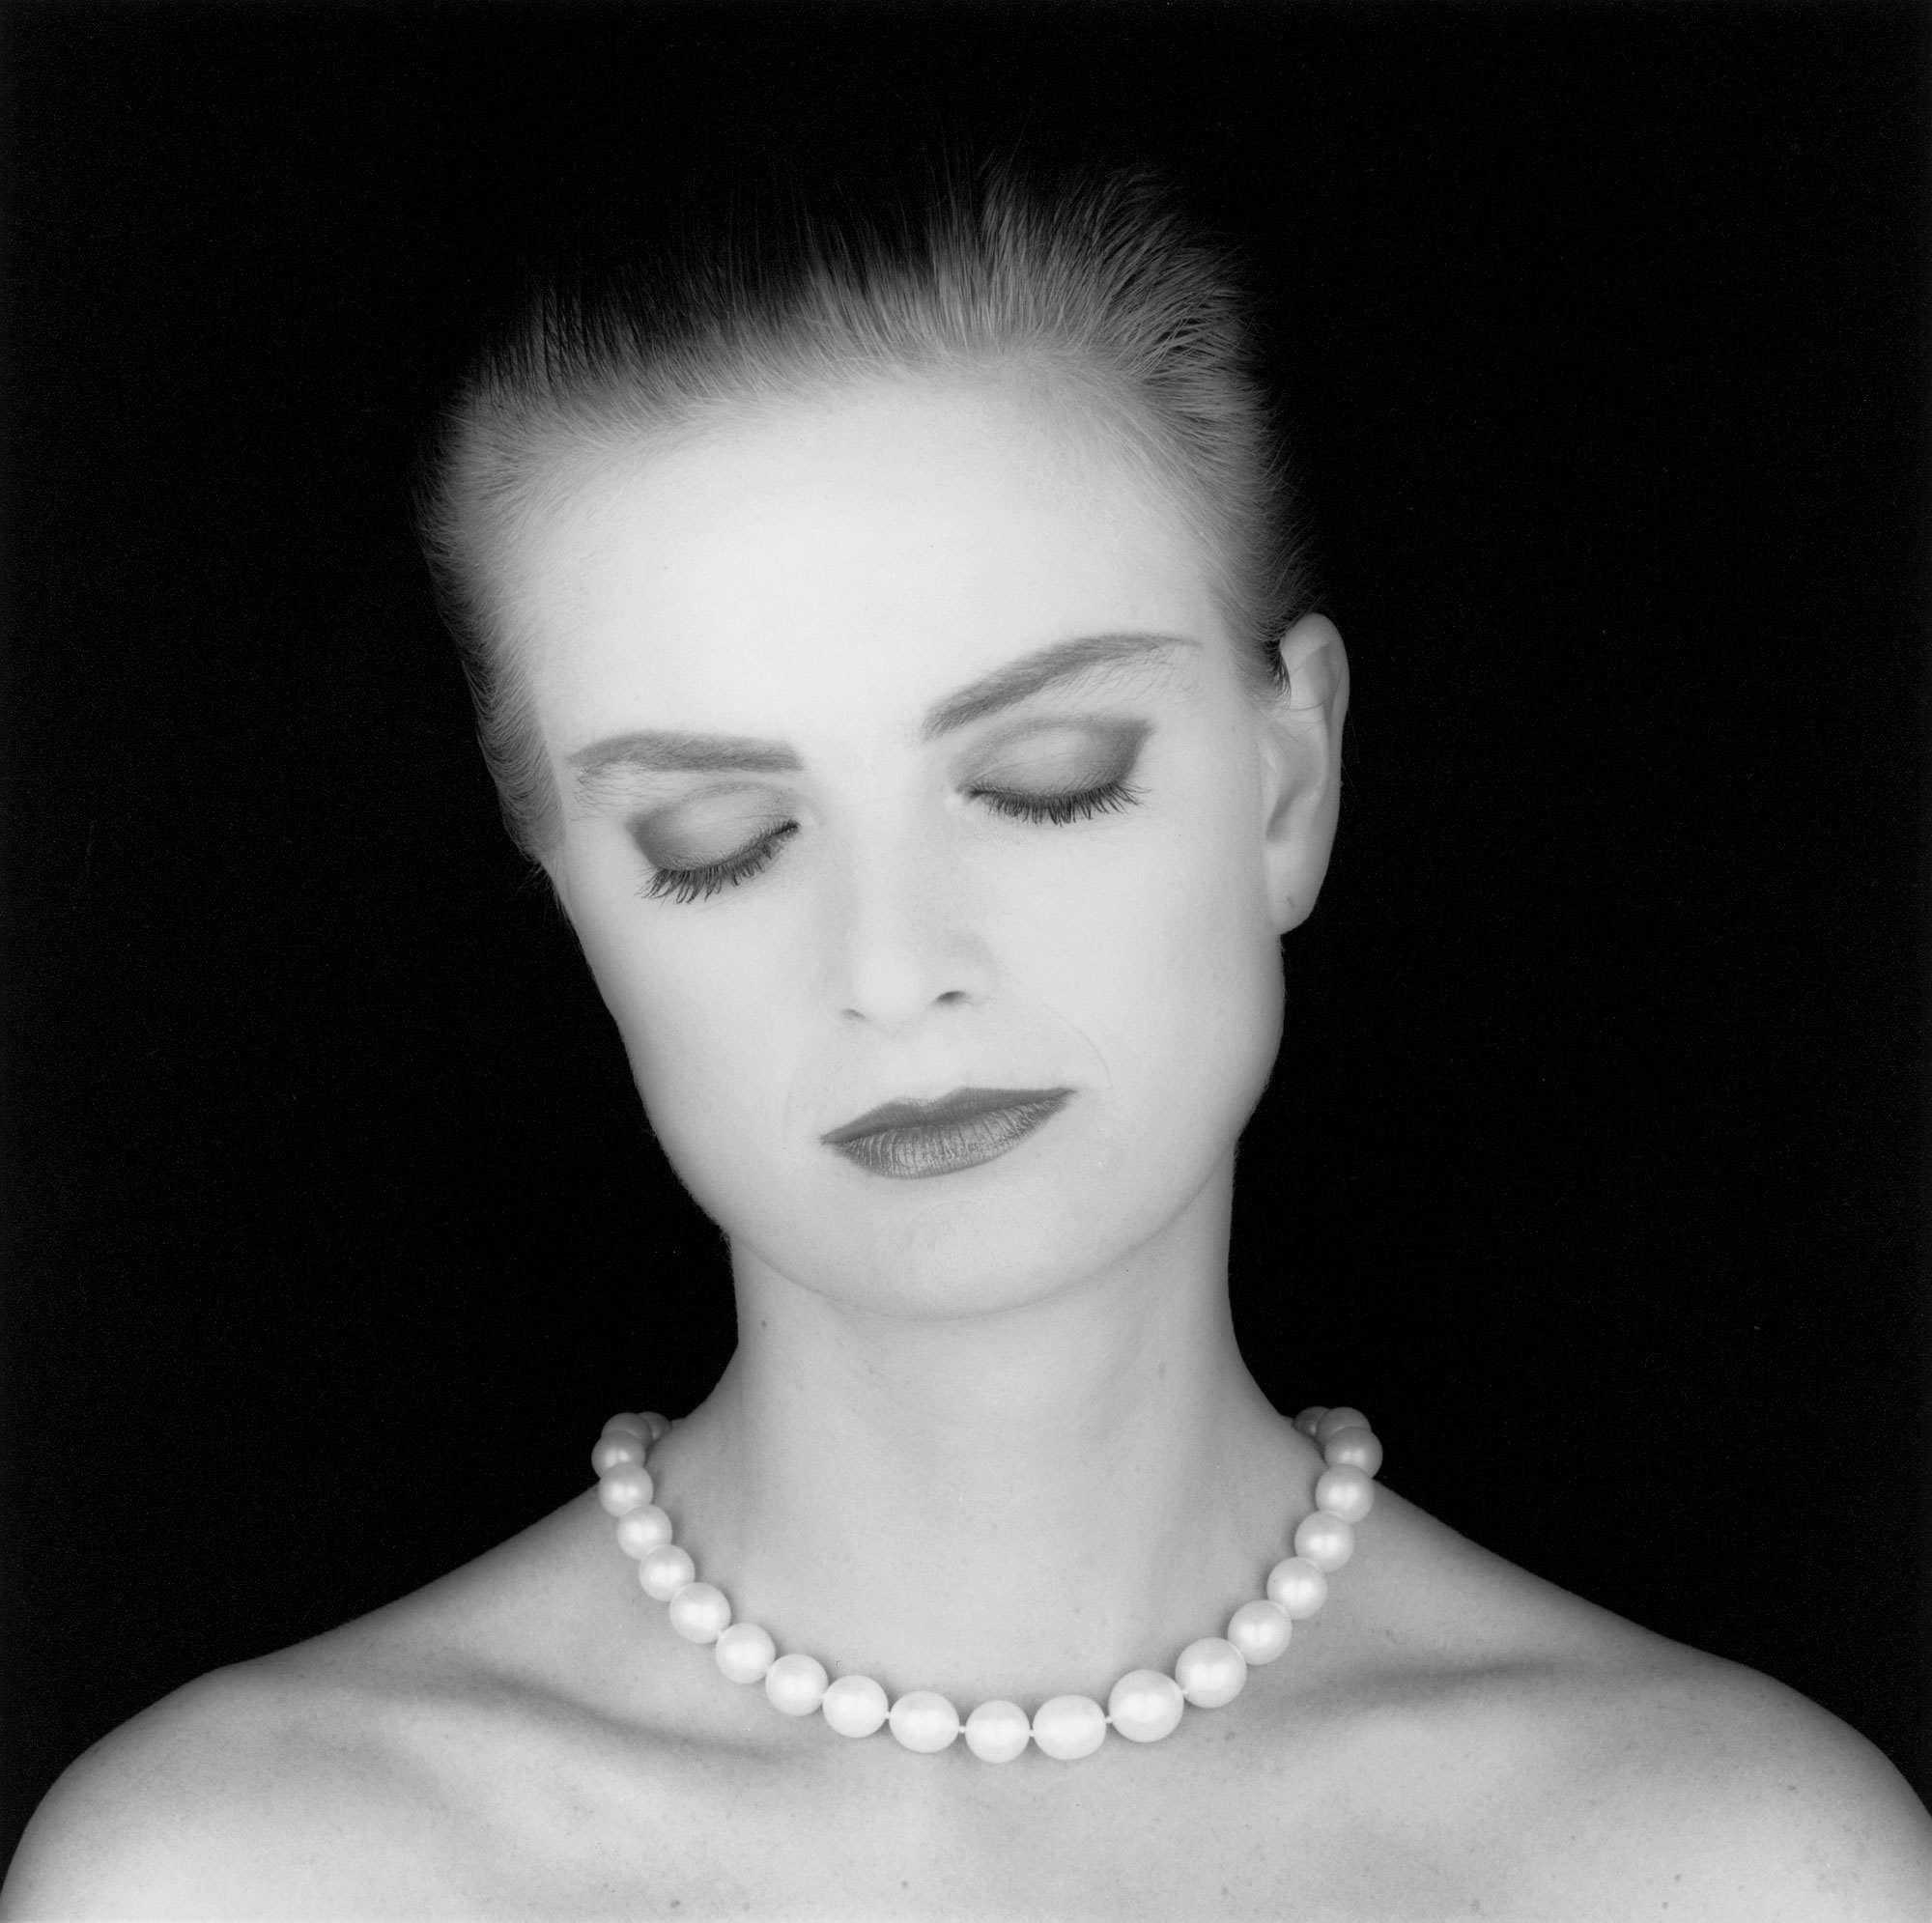 foto: © Robert Mapplethorpe Foundation - Princess Gloria Von Turn und Taxi